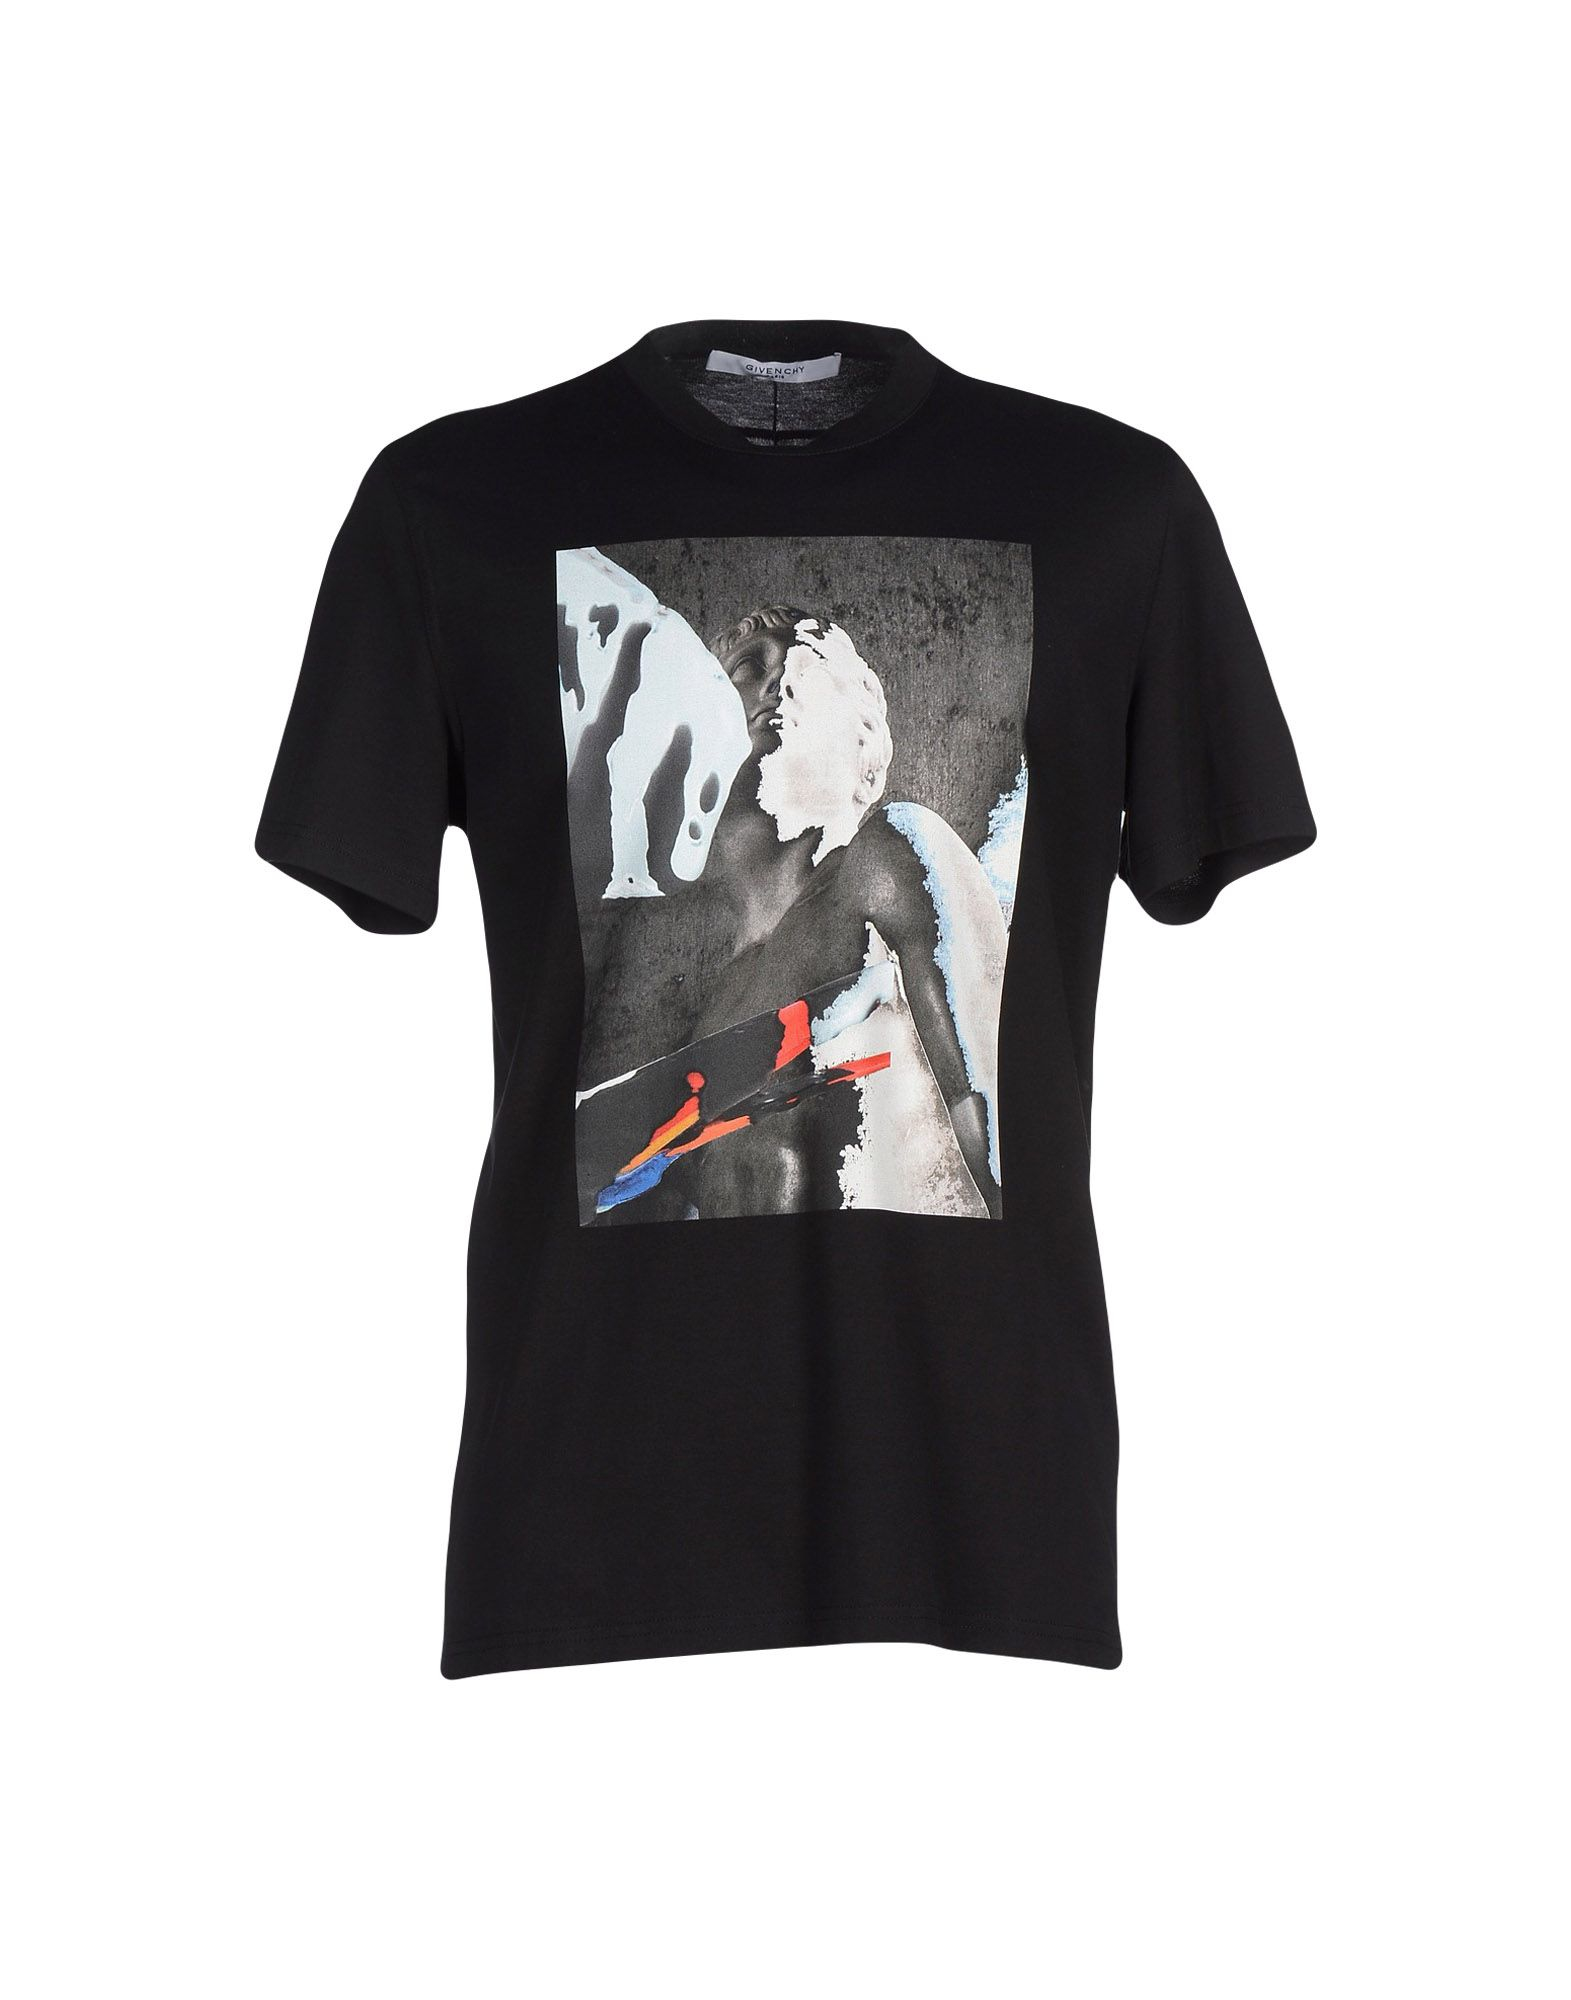 Givenchy T Shirt In Black For Men Lyst